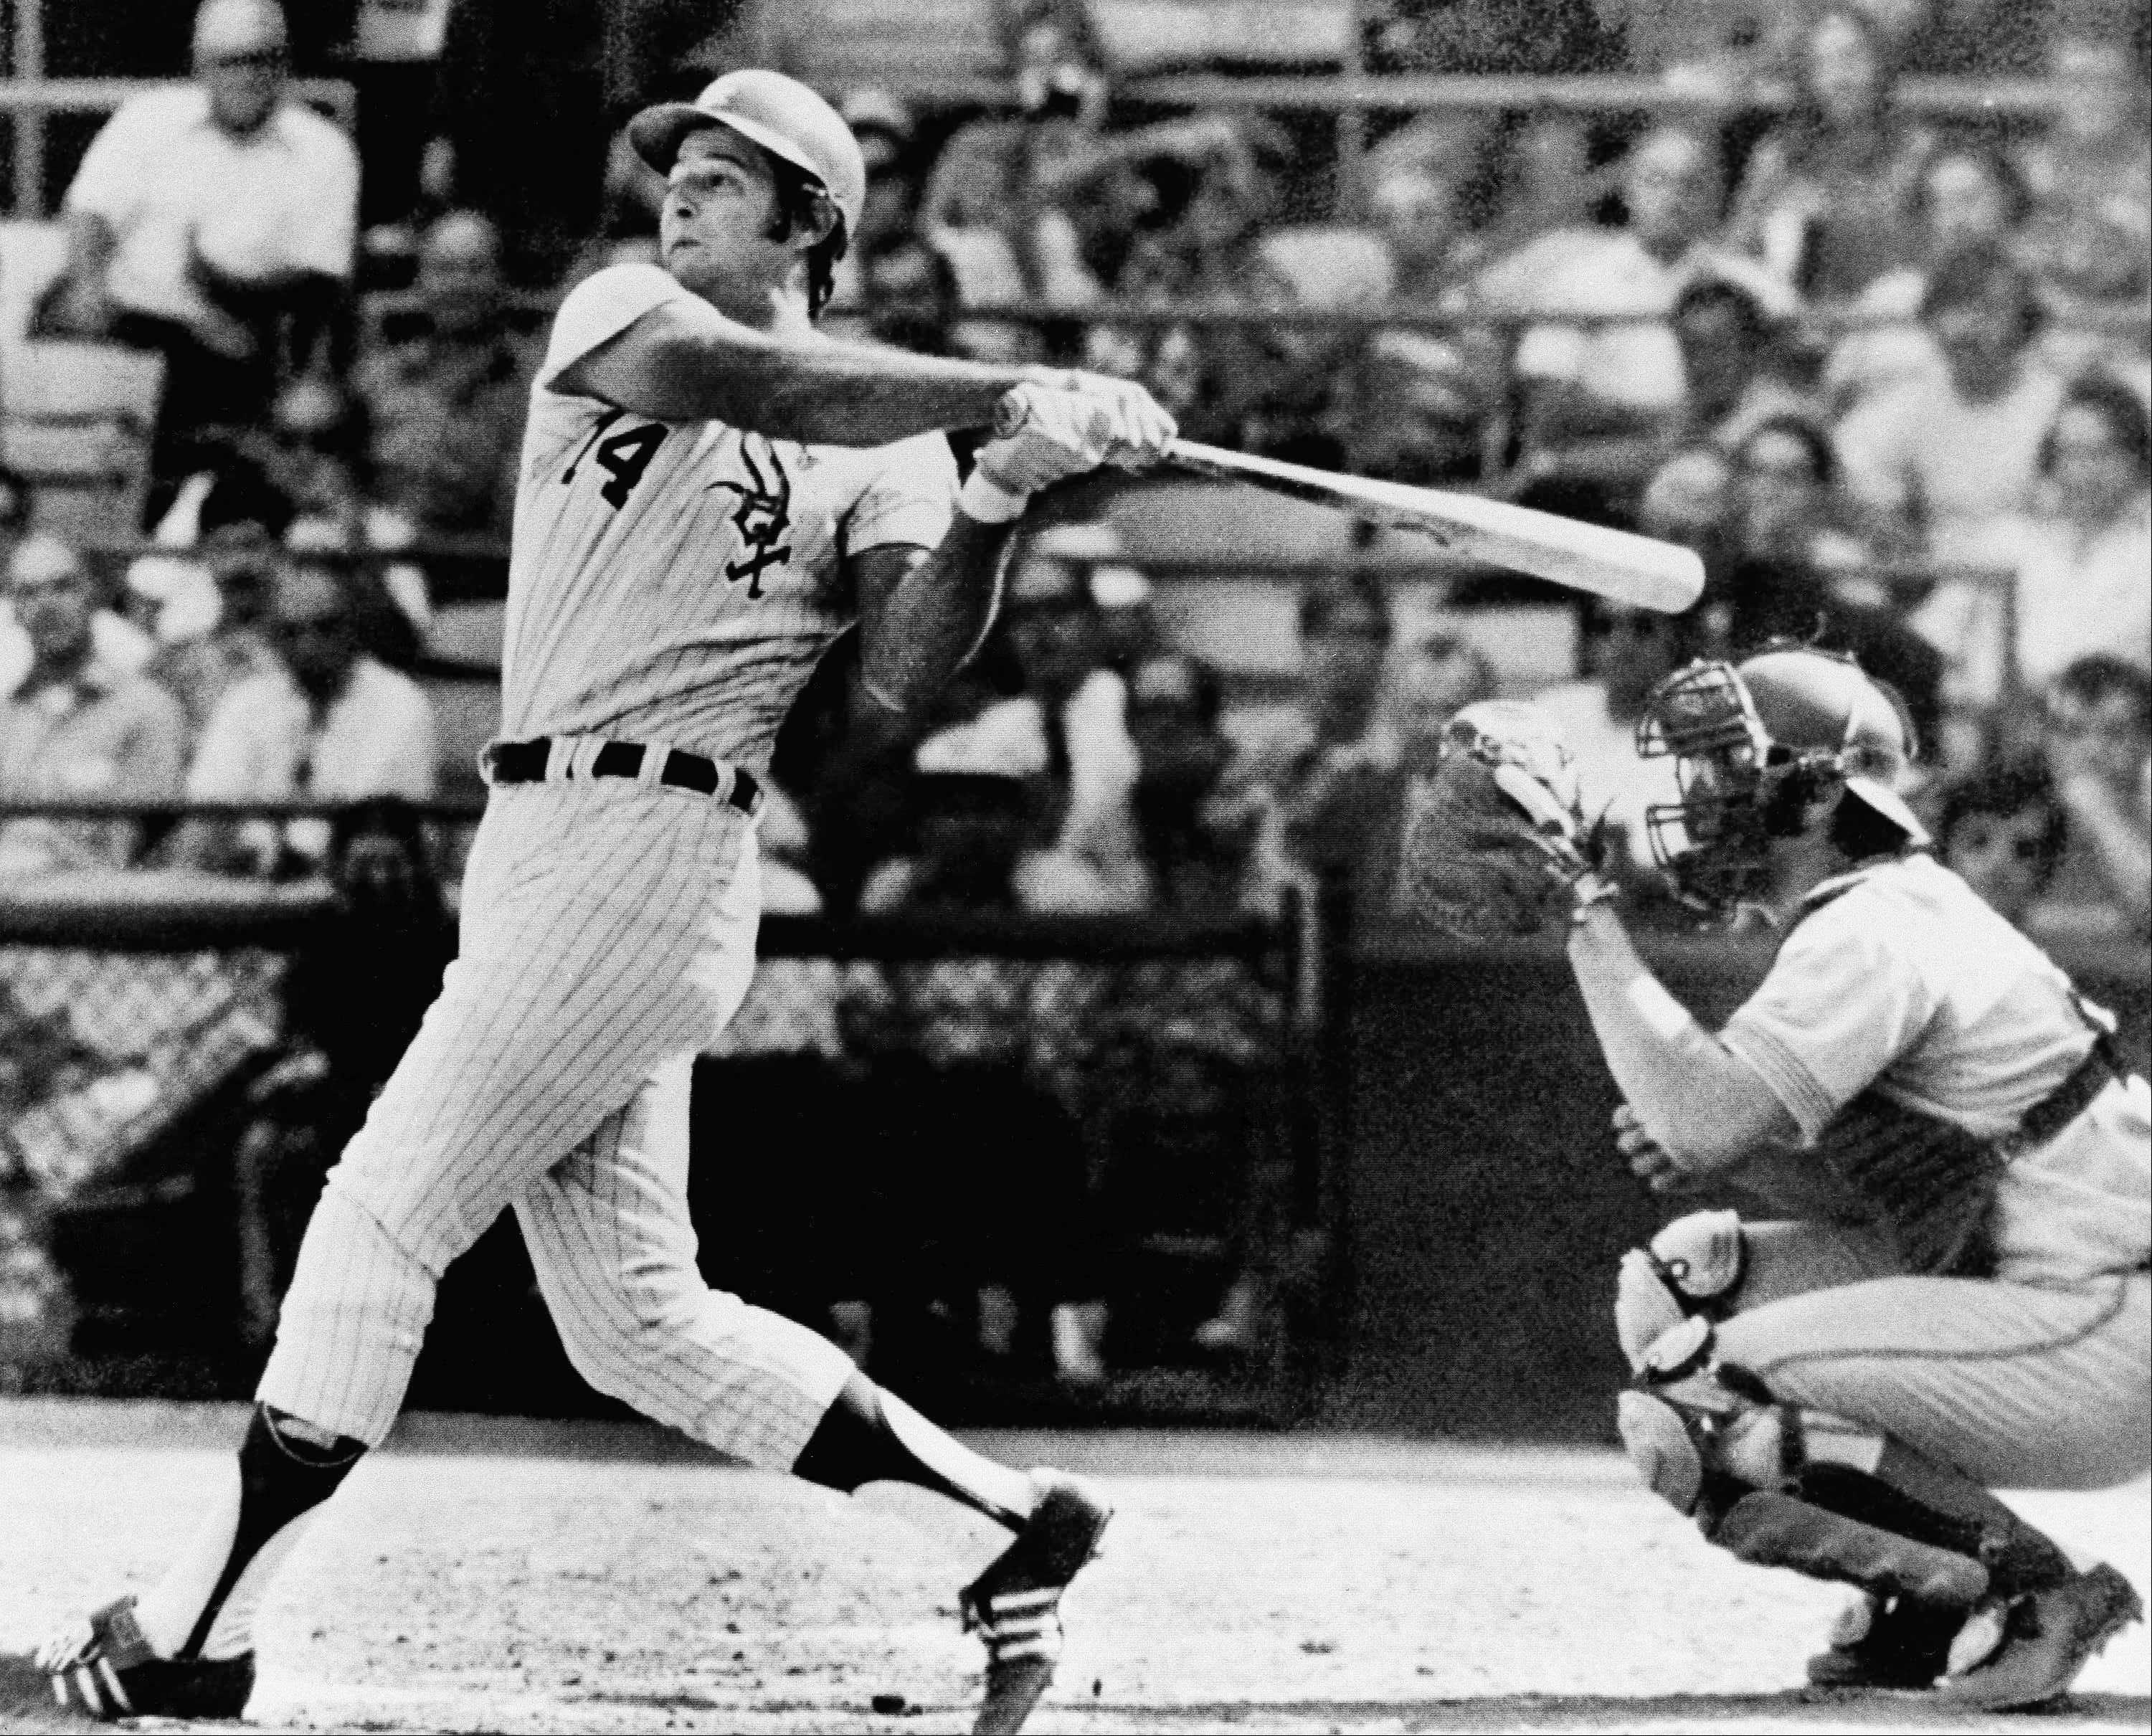 Bill Melton of the Chicago White Sox, 1971 American League home run champion, will undergo surgery for a herniated disc in his back, the White Sox announced on Saturday, July 8, 1972 in Chicago. Melton shown here hitting his 33 home run off the Brewers in the 1971 season. He was hitting 245, with 7 home runs and 30 RBI's through 57 games of this season.